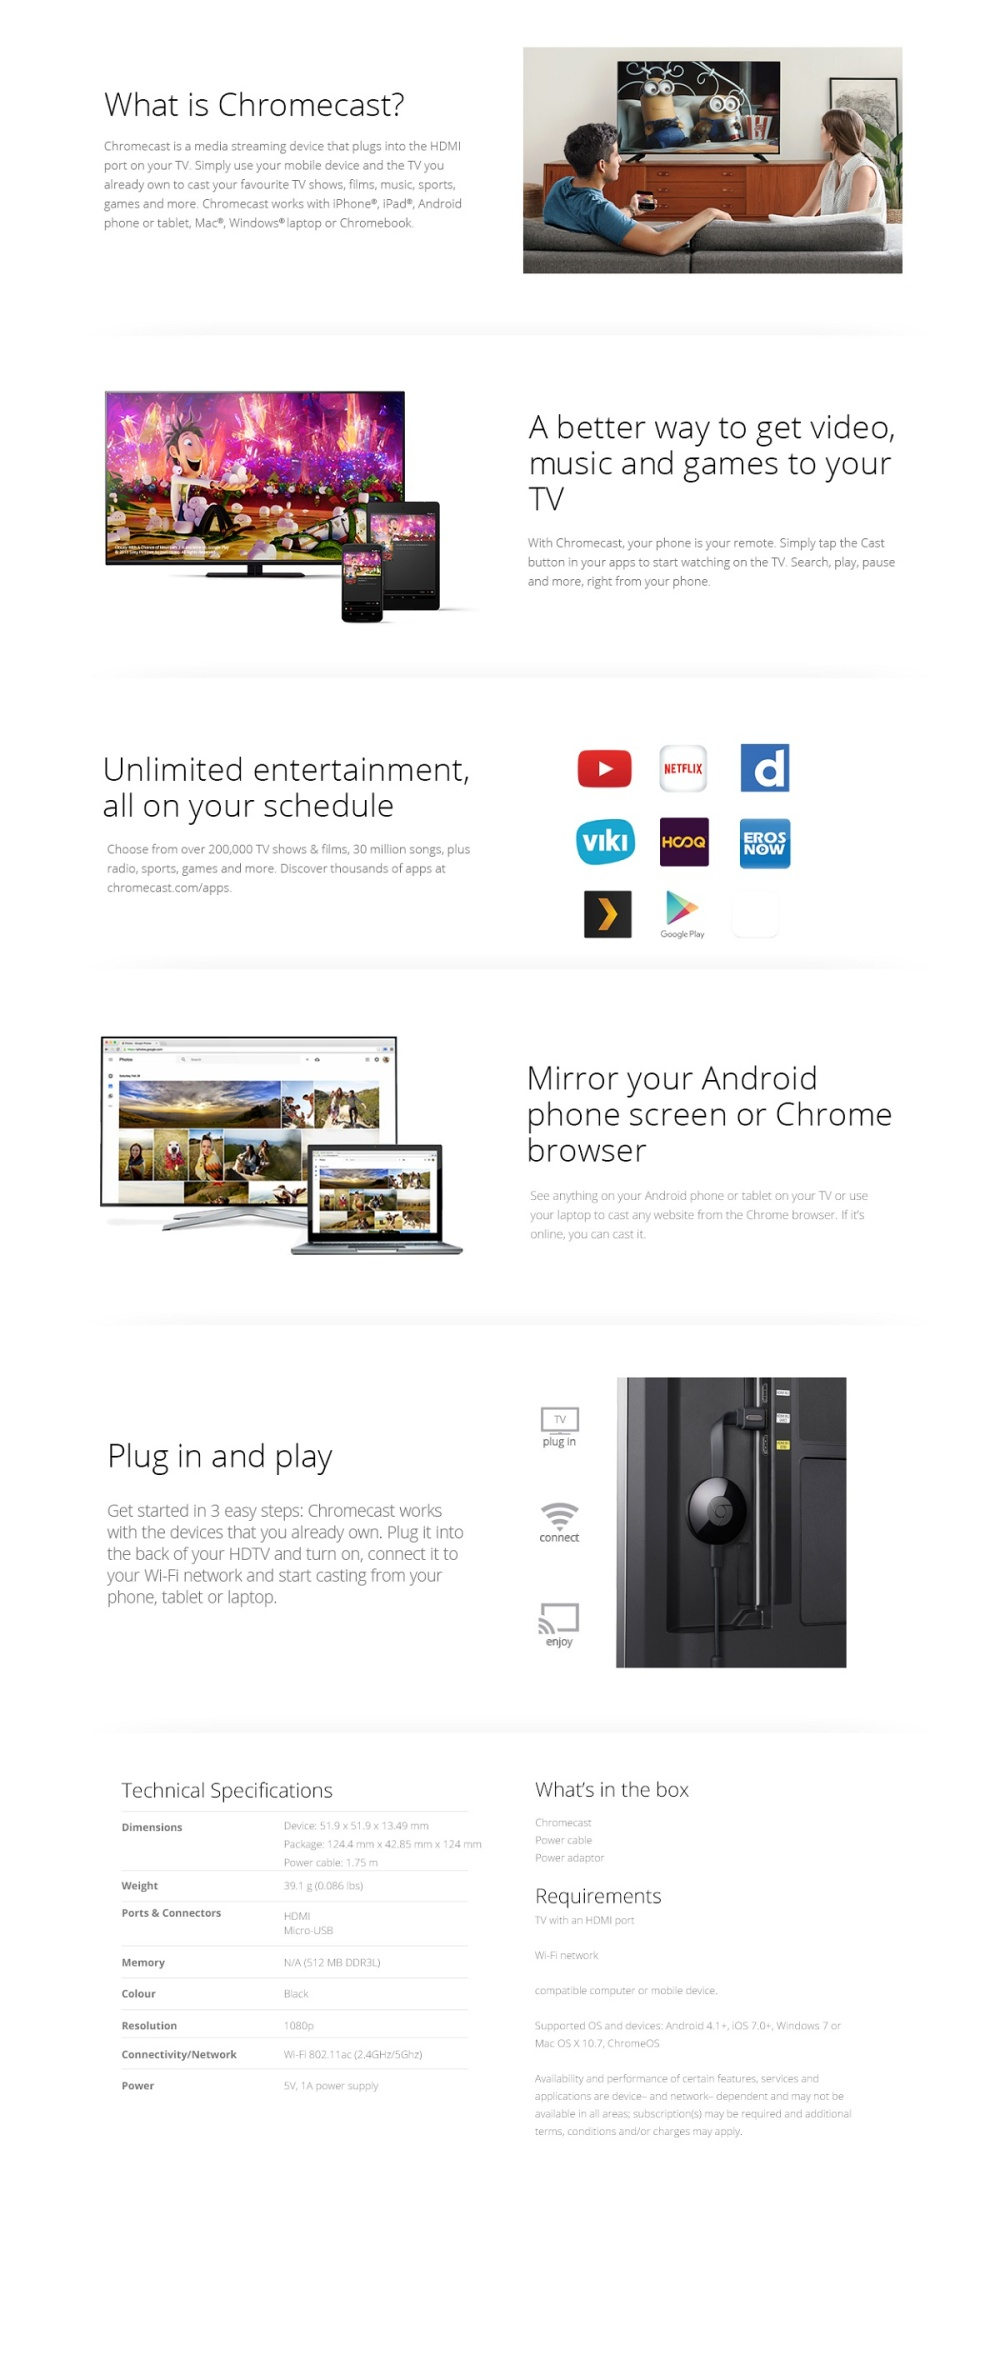 Official Google Chromecast 2 HDMI Casting Device - (Black) - Local SG Plug  with Safety Marks 11 11 Promotion!!!